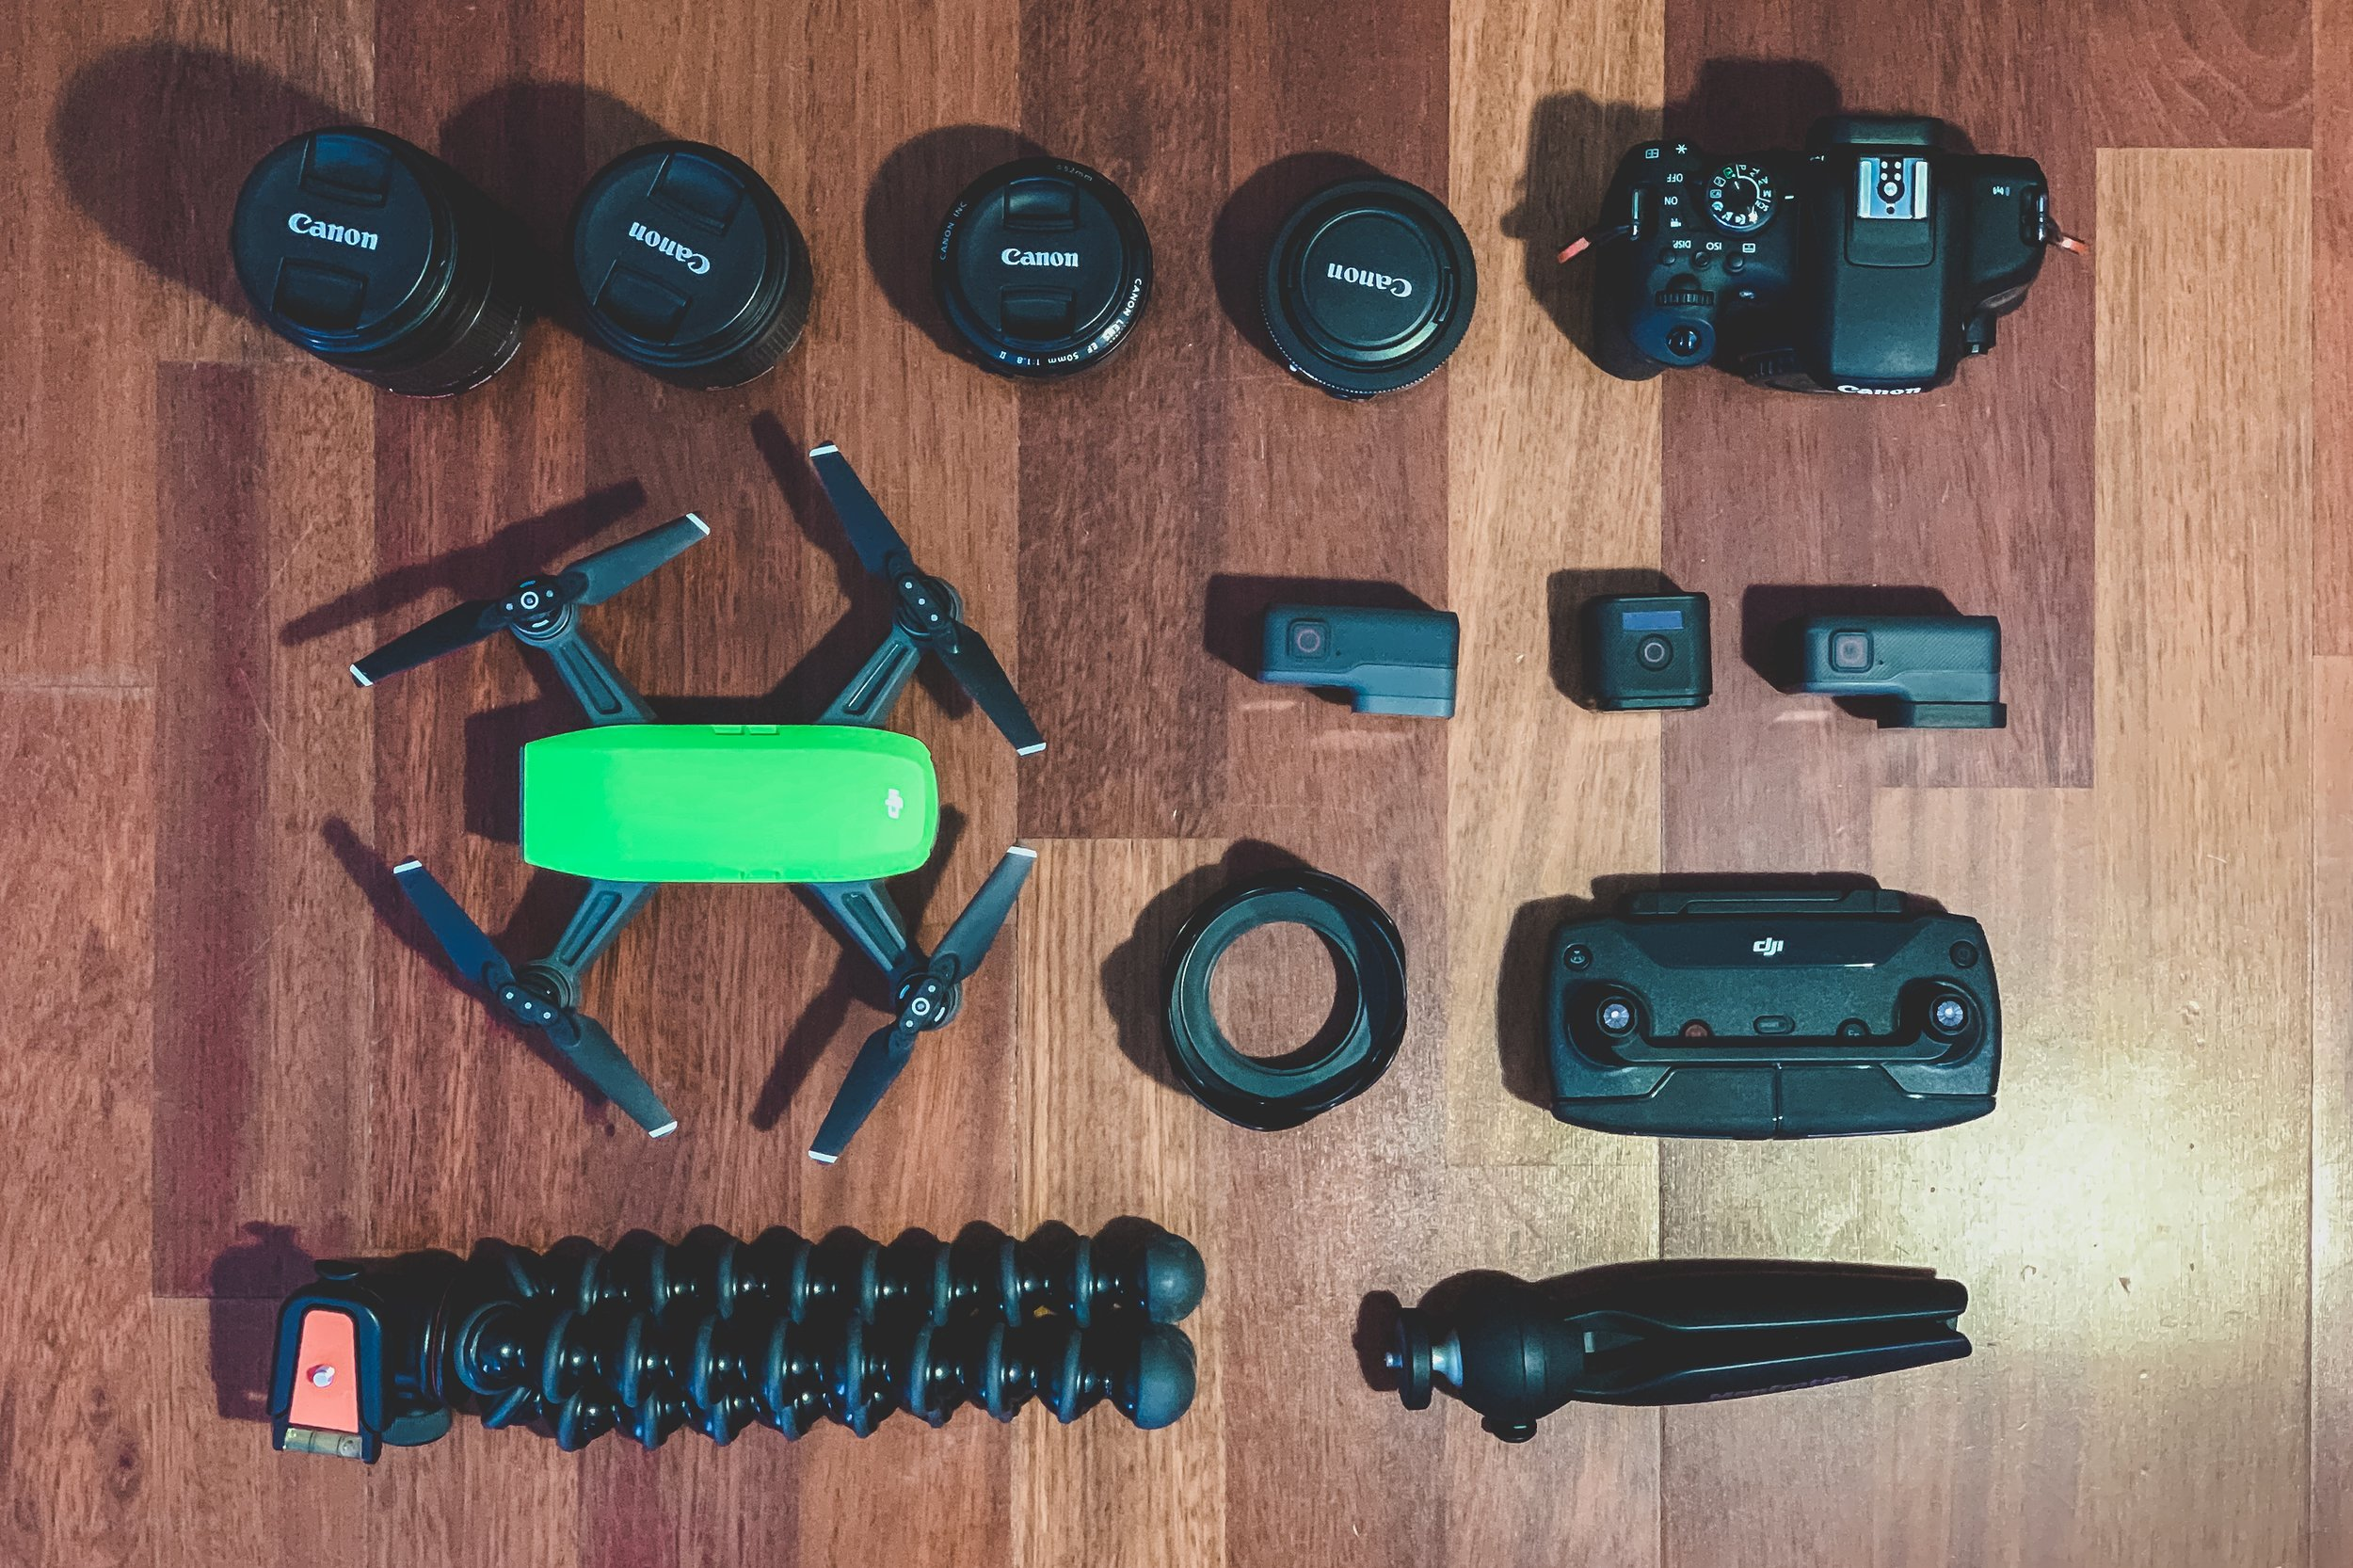 Gear choices - My go-to camera gear for capturing more cinematic footage in run&gun projects.